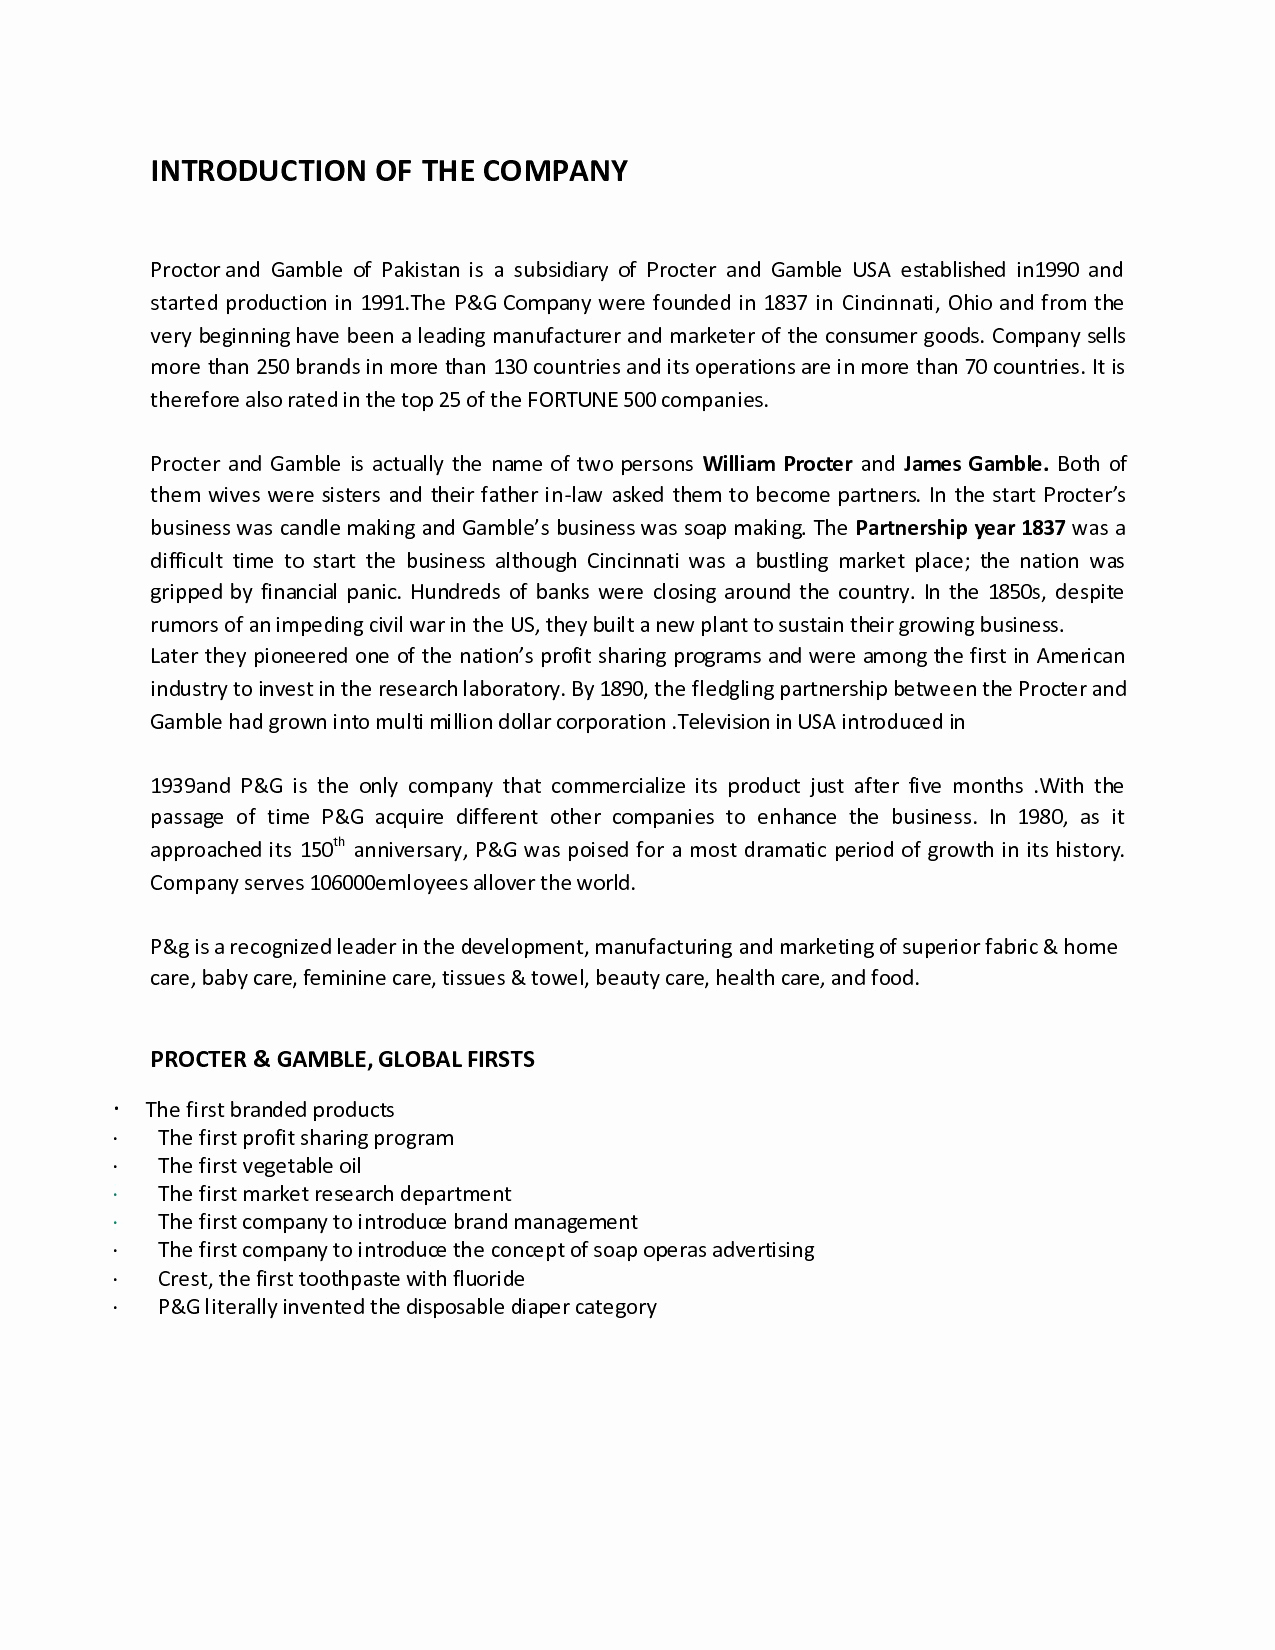 Quick Cover Letter Template - the Cover Letter Information My Cover Letters Classic Blue Cover